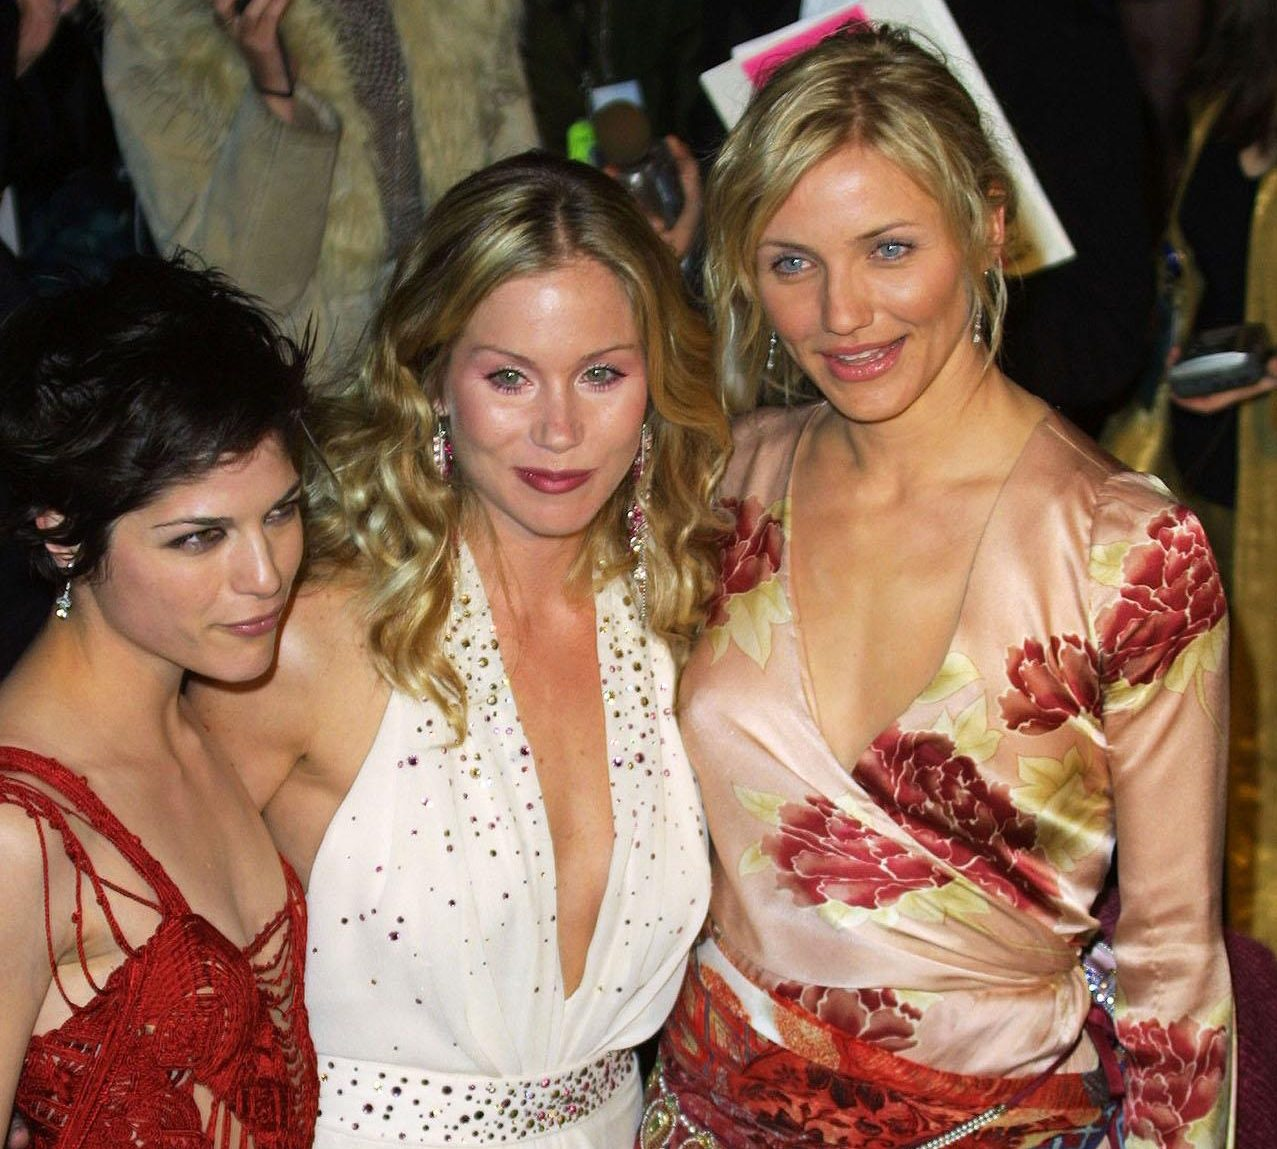 JUST KIDDING: Selma Blair says Cameron Diaz not retired